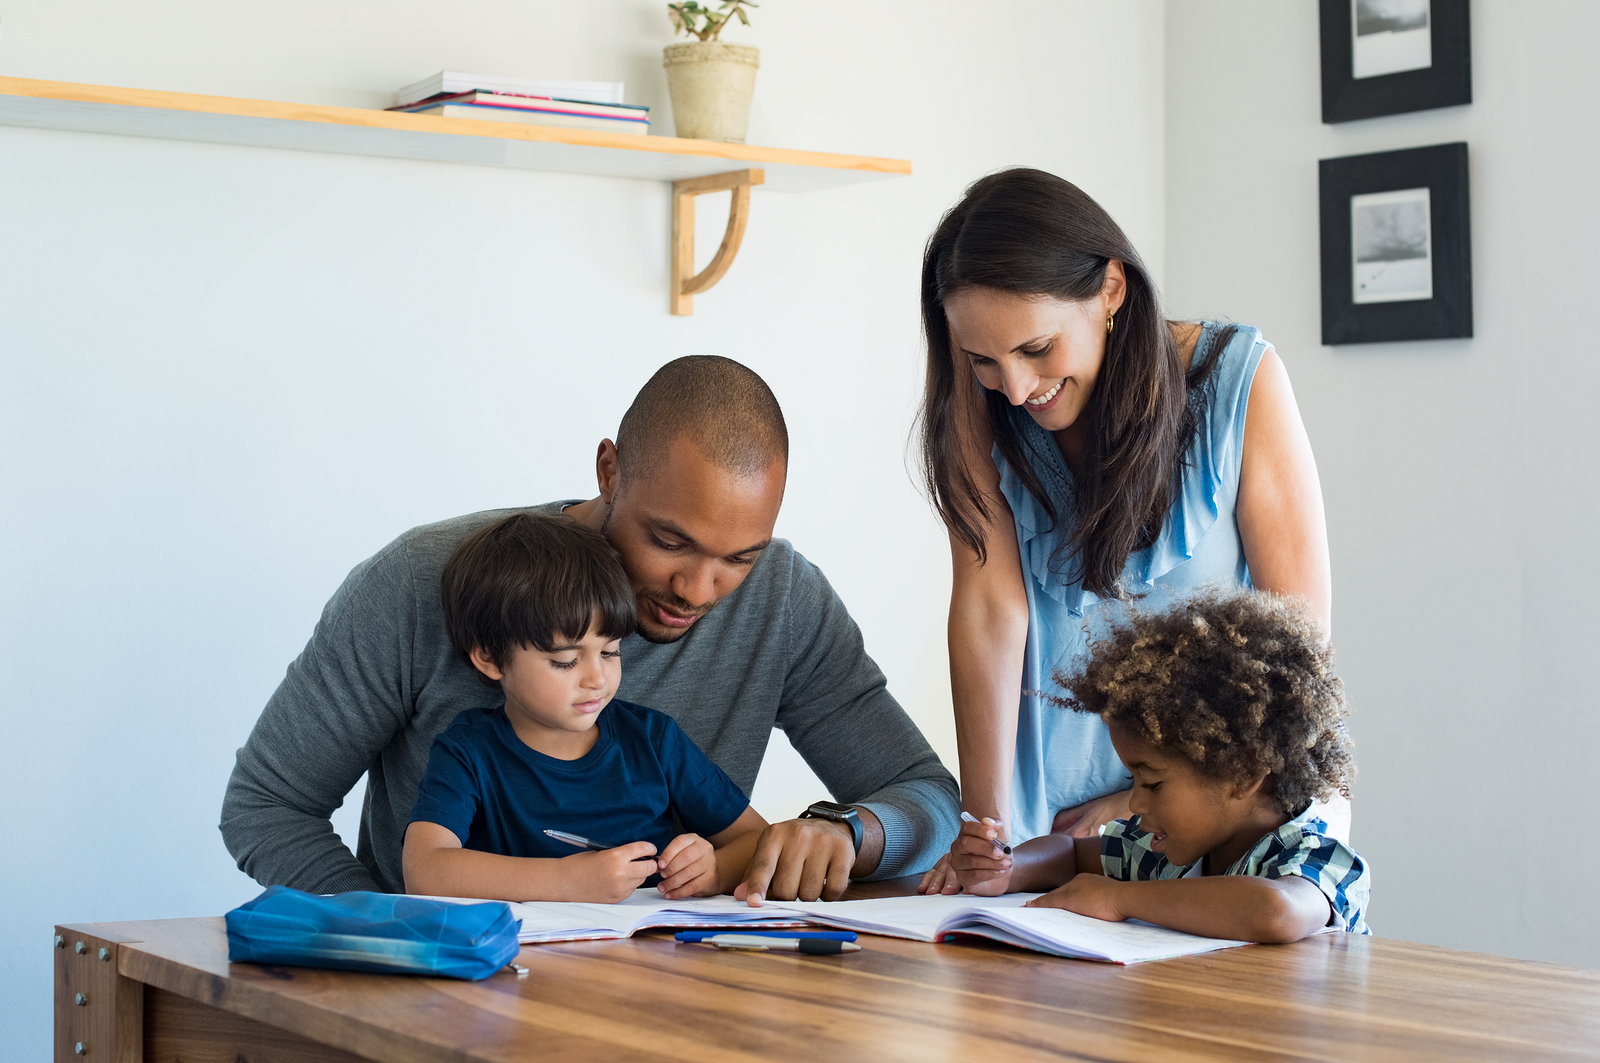 Study: Learning With Parents Attributed to Academic Success